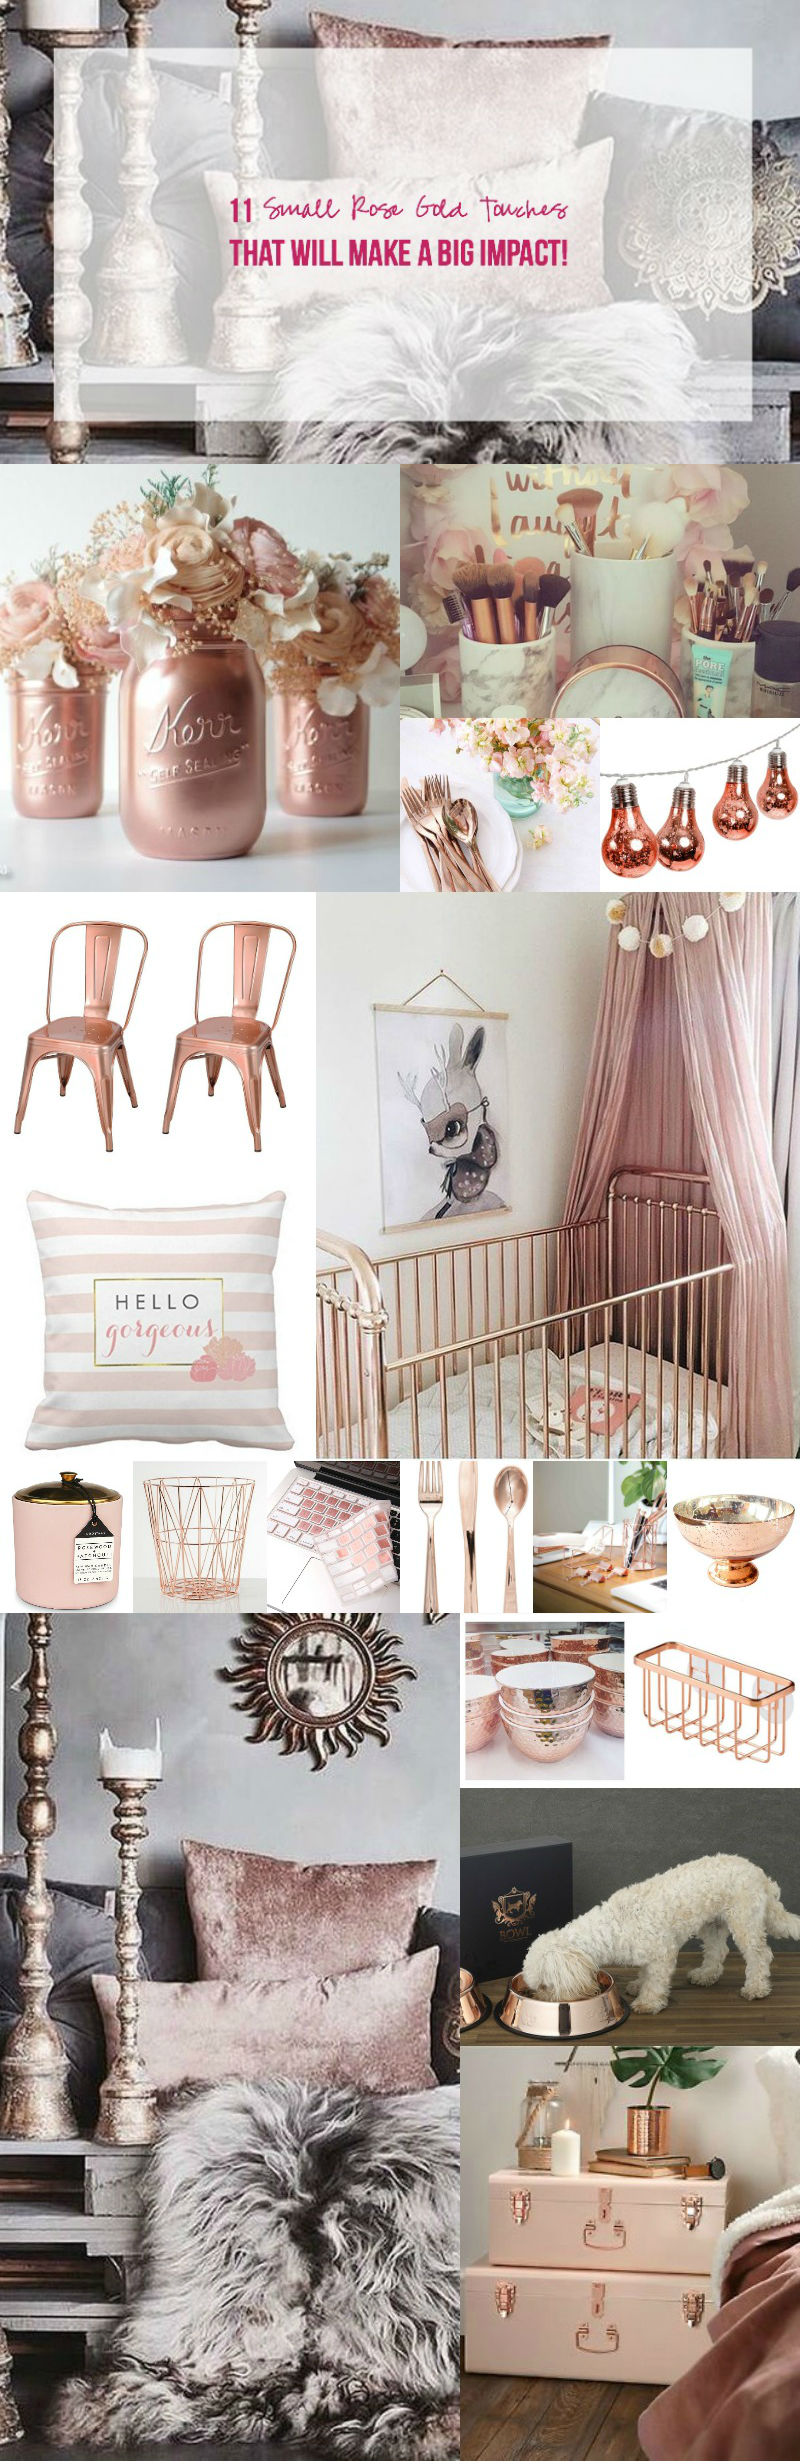 11 Small Rose Gold Touches that will make a BIG Impact